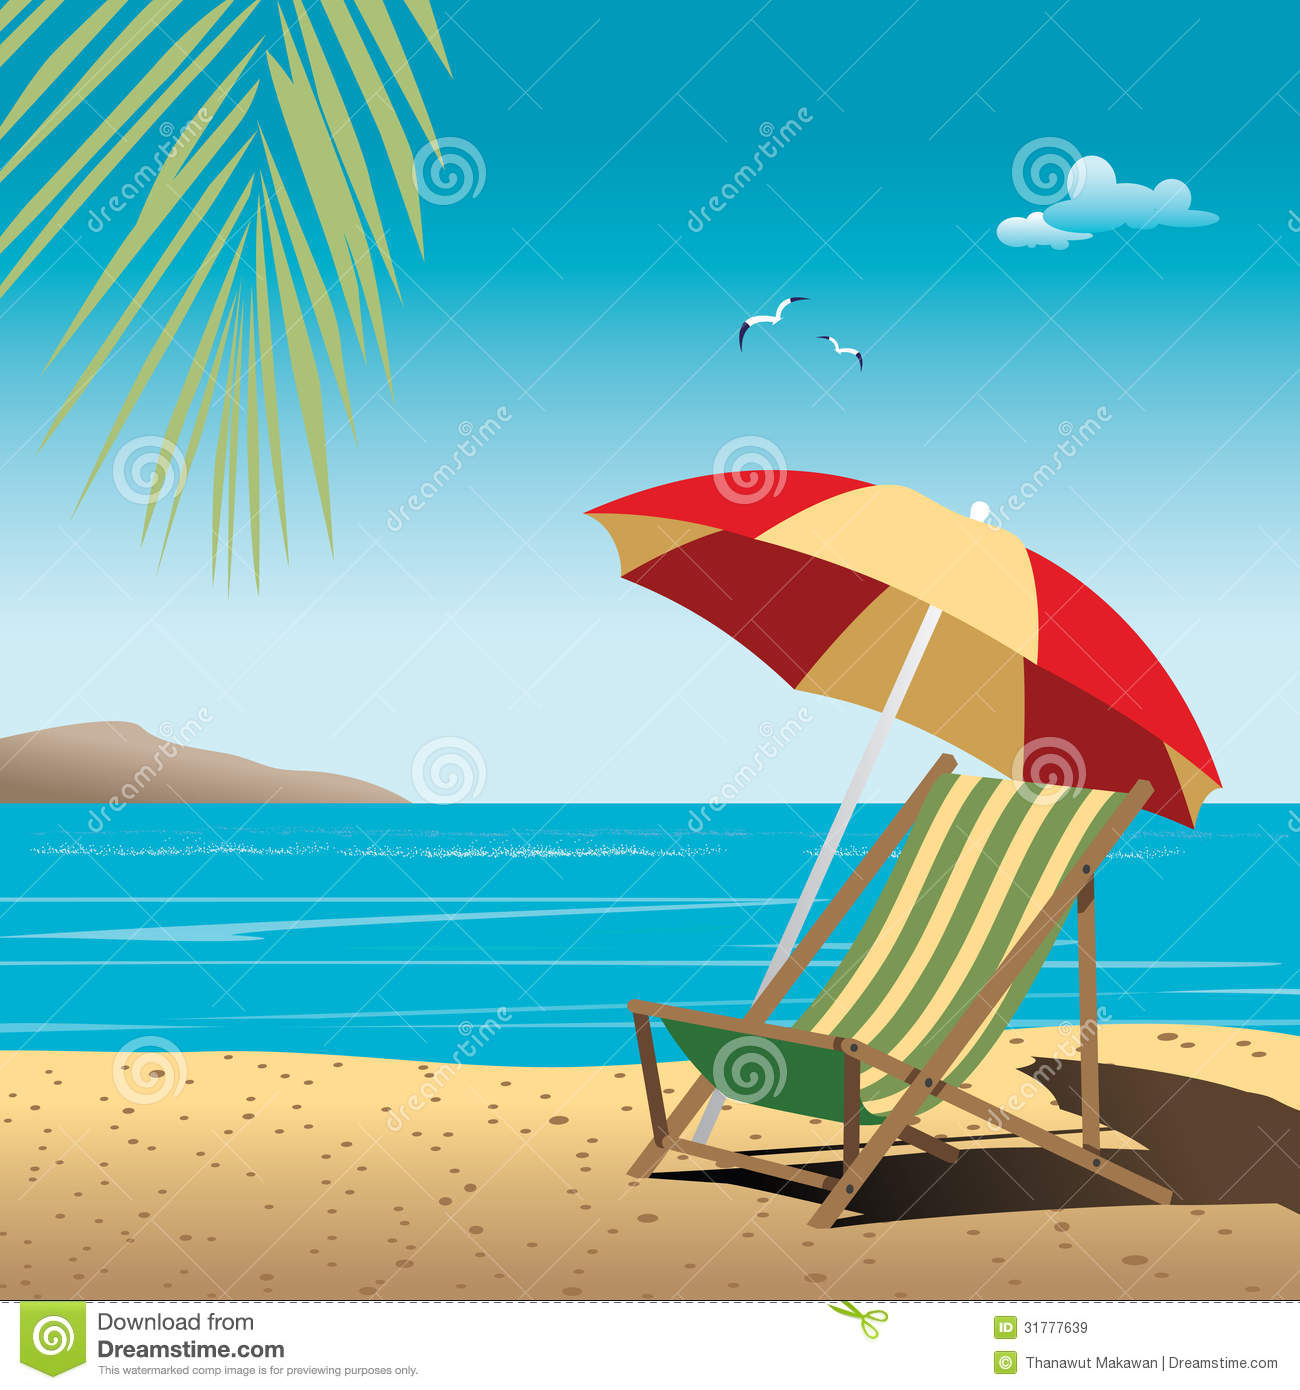 Beautiful Vintage Summer Seaside Illustration Royalty Free: Beach Vector Royalty Free Stock Images